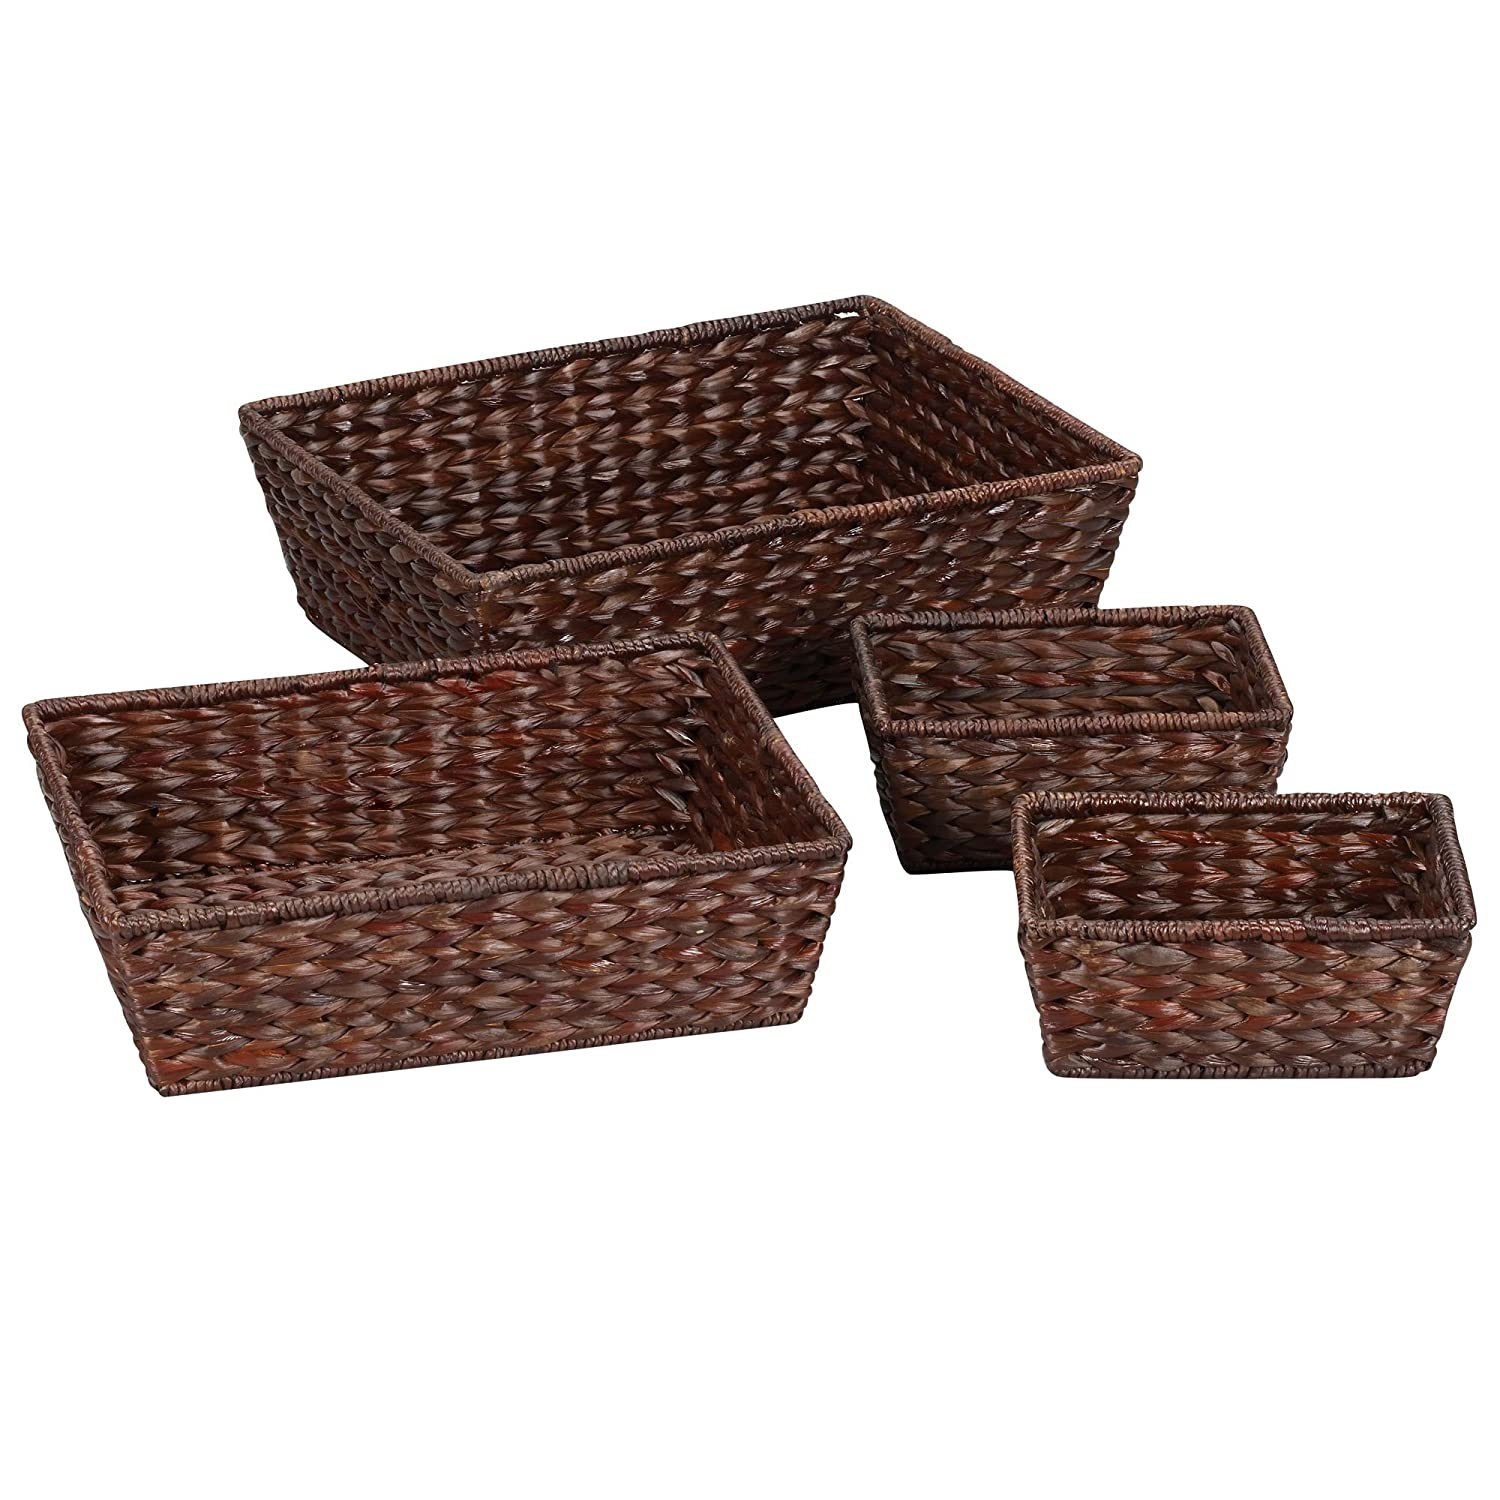 Household Essentials ML-6695B Set of 4 Wicker Storage Baskets - Dark Brown